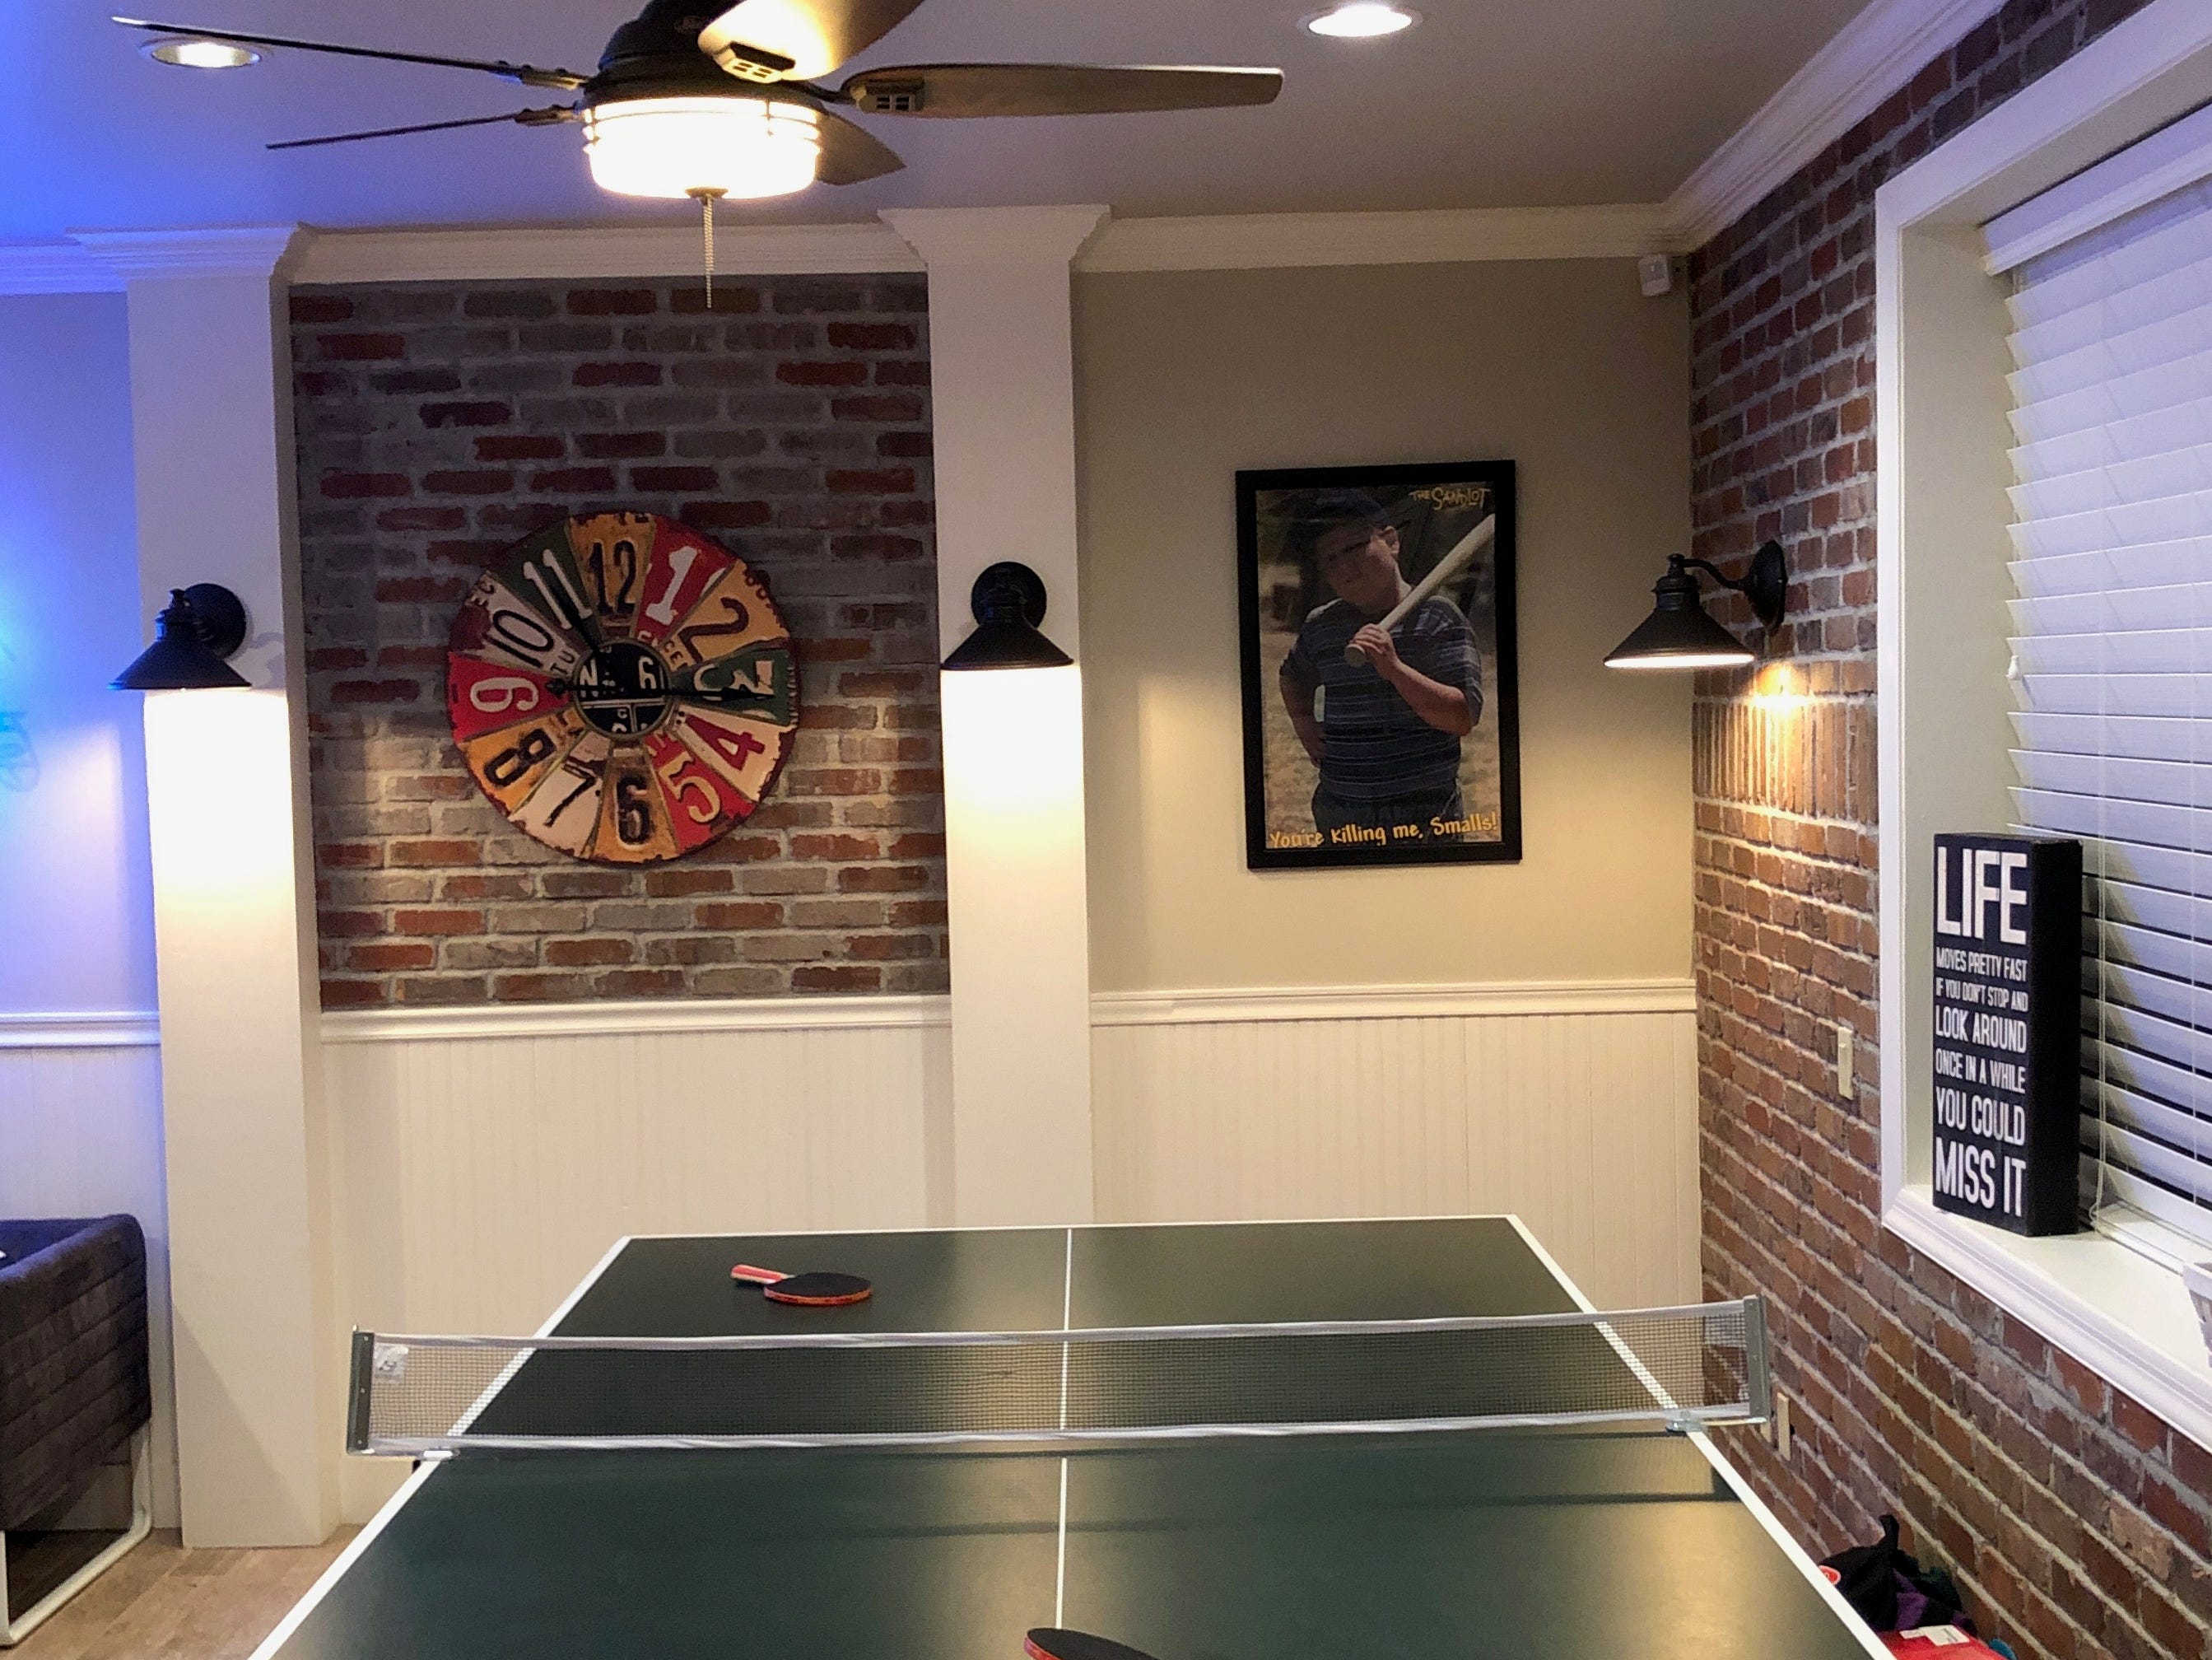 The ping-pong table offers another gaming option.